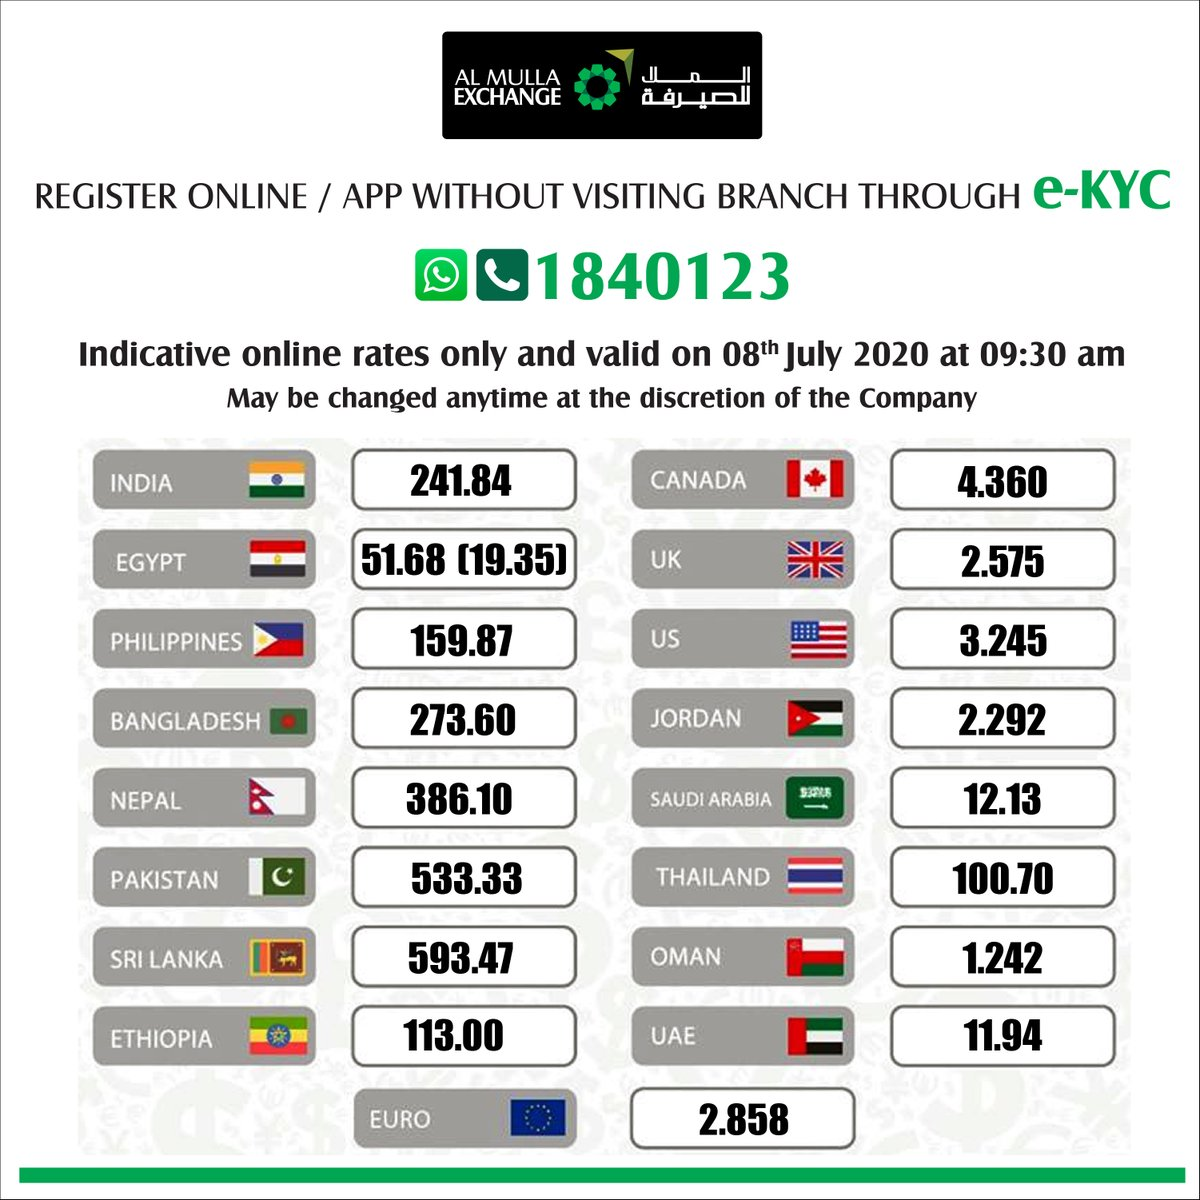 🔺E-KYC🔺 Now Register Online / App without visiting branch ☎️ WhatsApp/Call 1840123 to get started. 📱💻 #AlMullaExchange #Kuwait #Remittances https://t.co/T1TkeCTpma